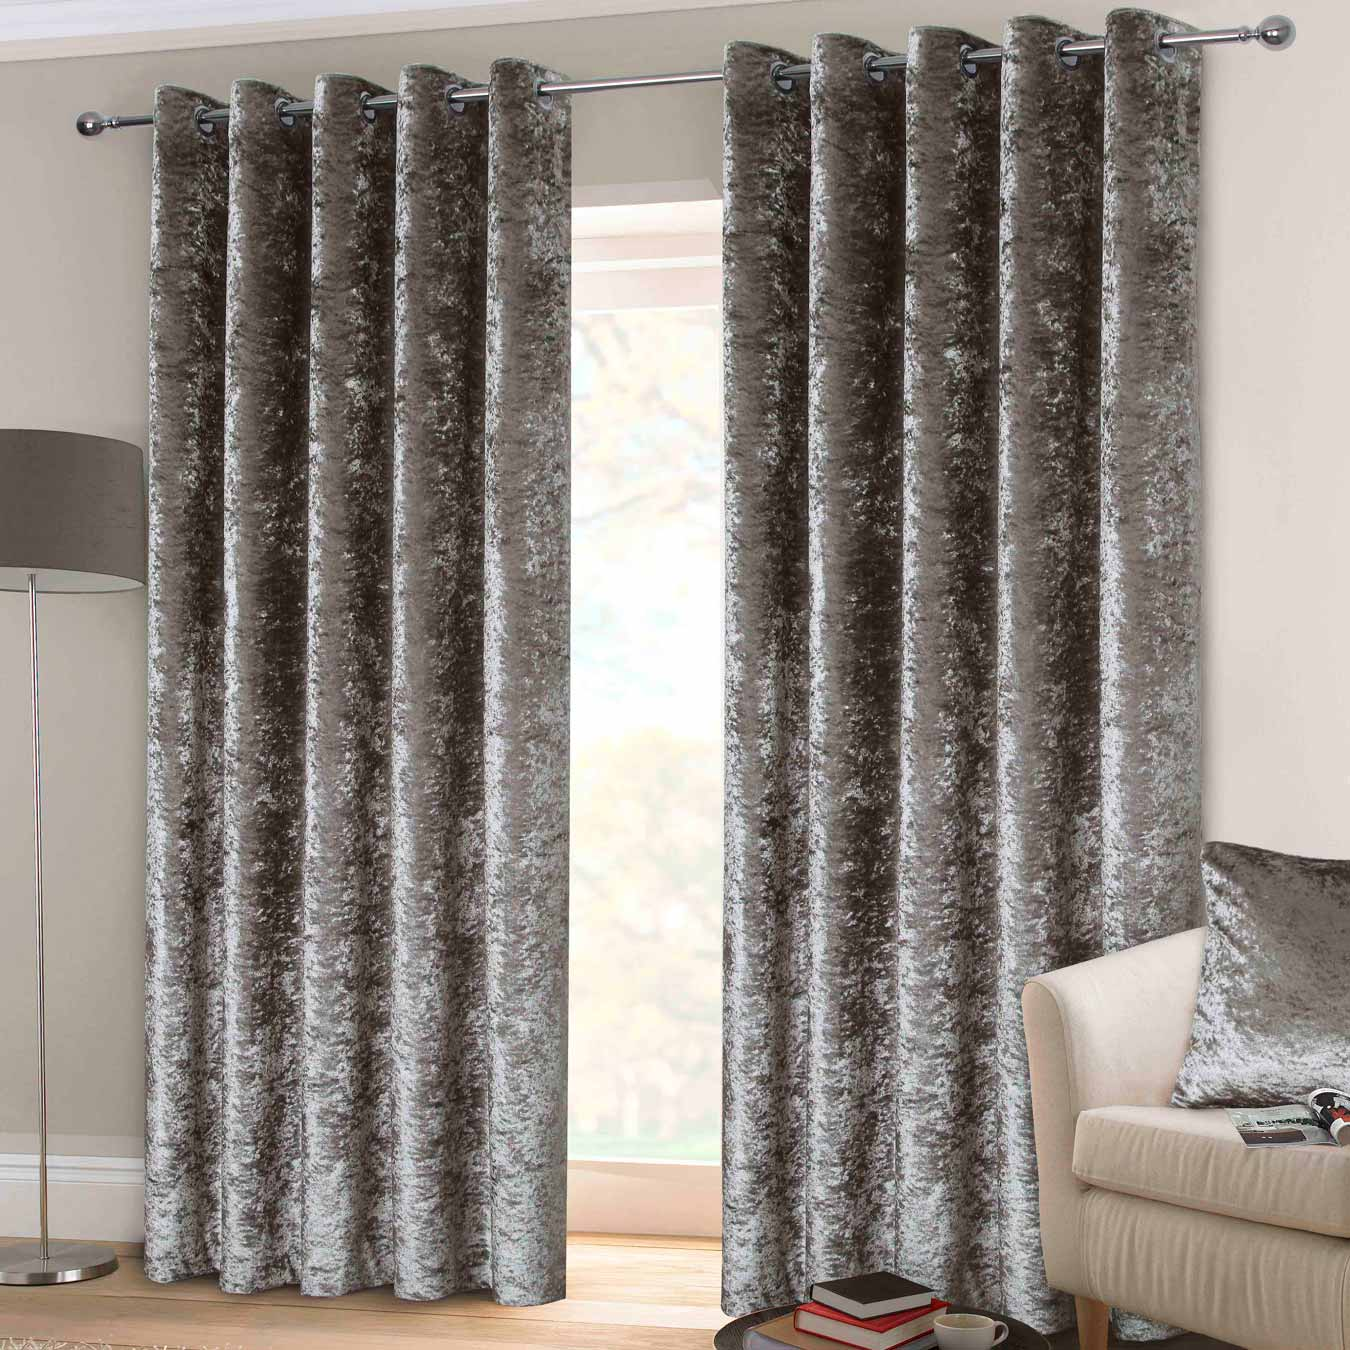 Crushed Velvet Lined Eyelet Curtains Silver - 66'' x 72'' - Ideal Textiles